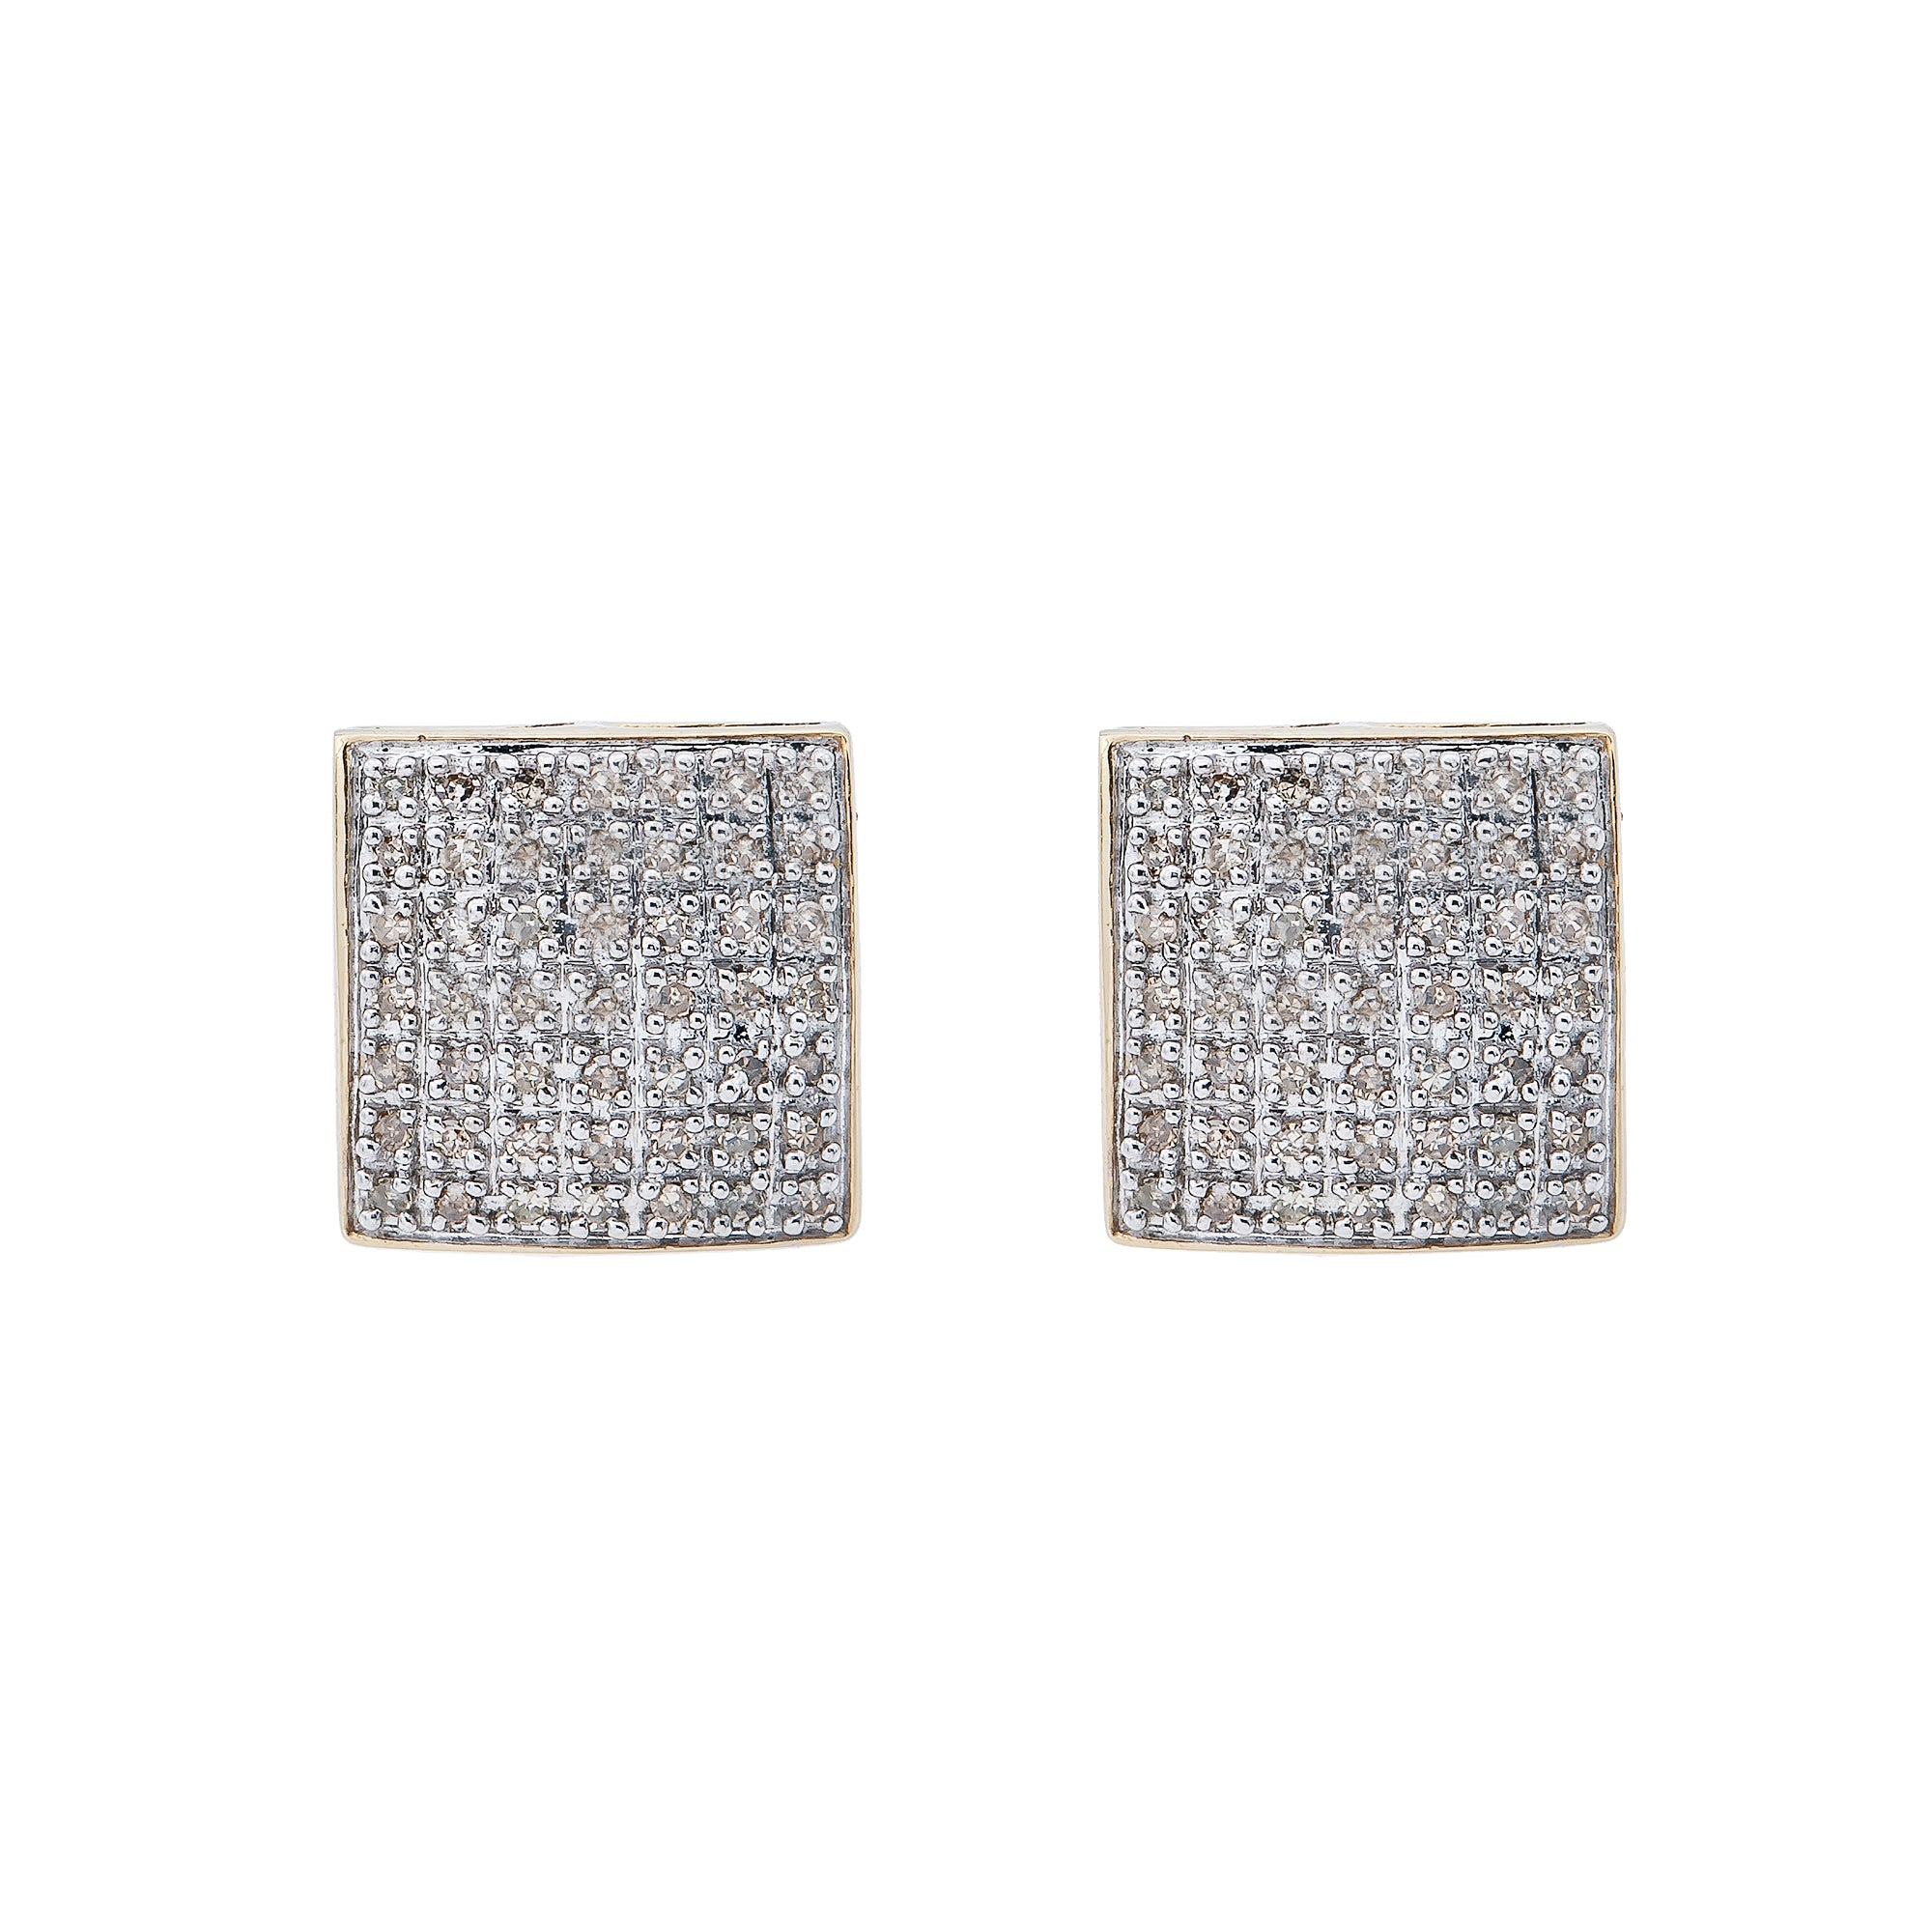 10K Yellow Gold Unisex Earrings with 0.40 CT Diamond